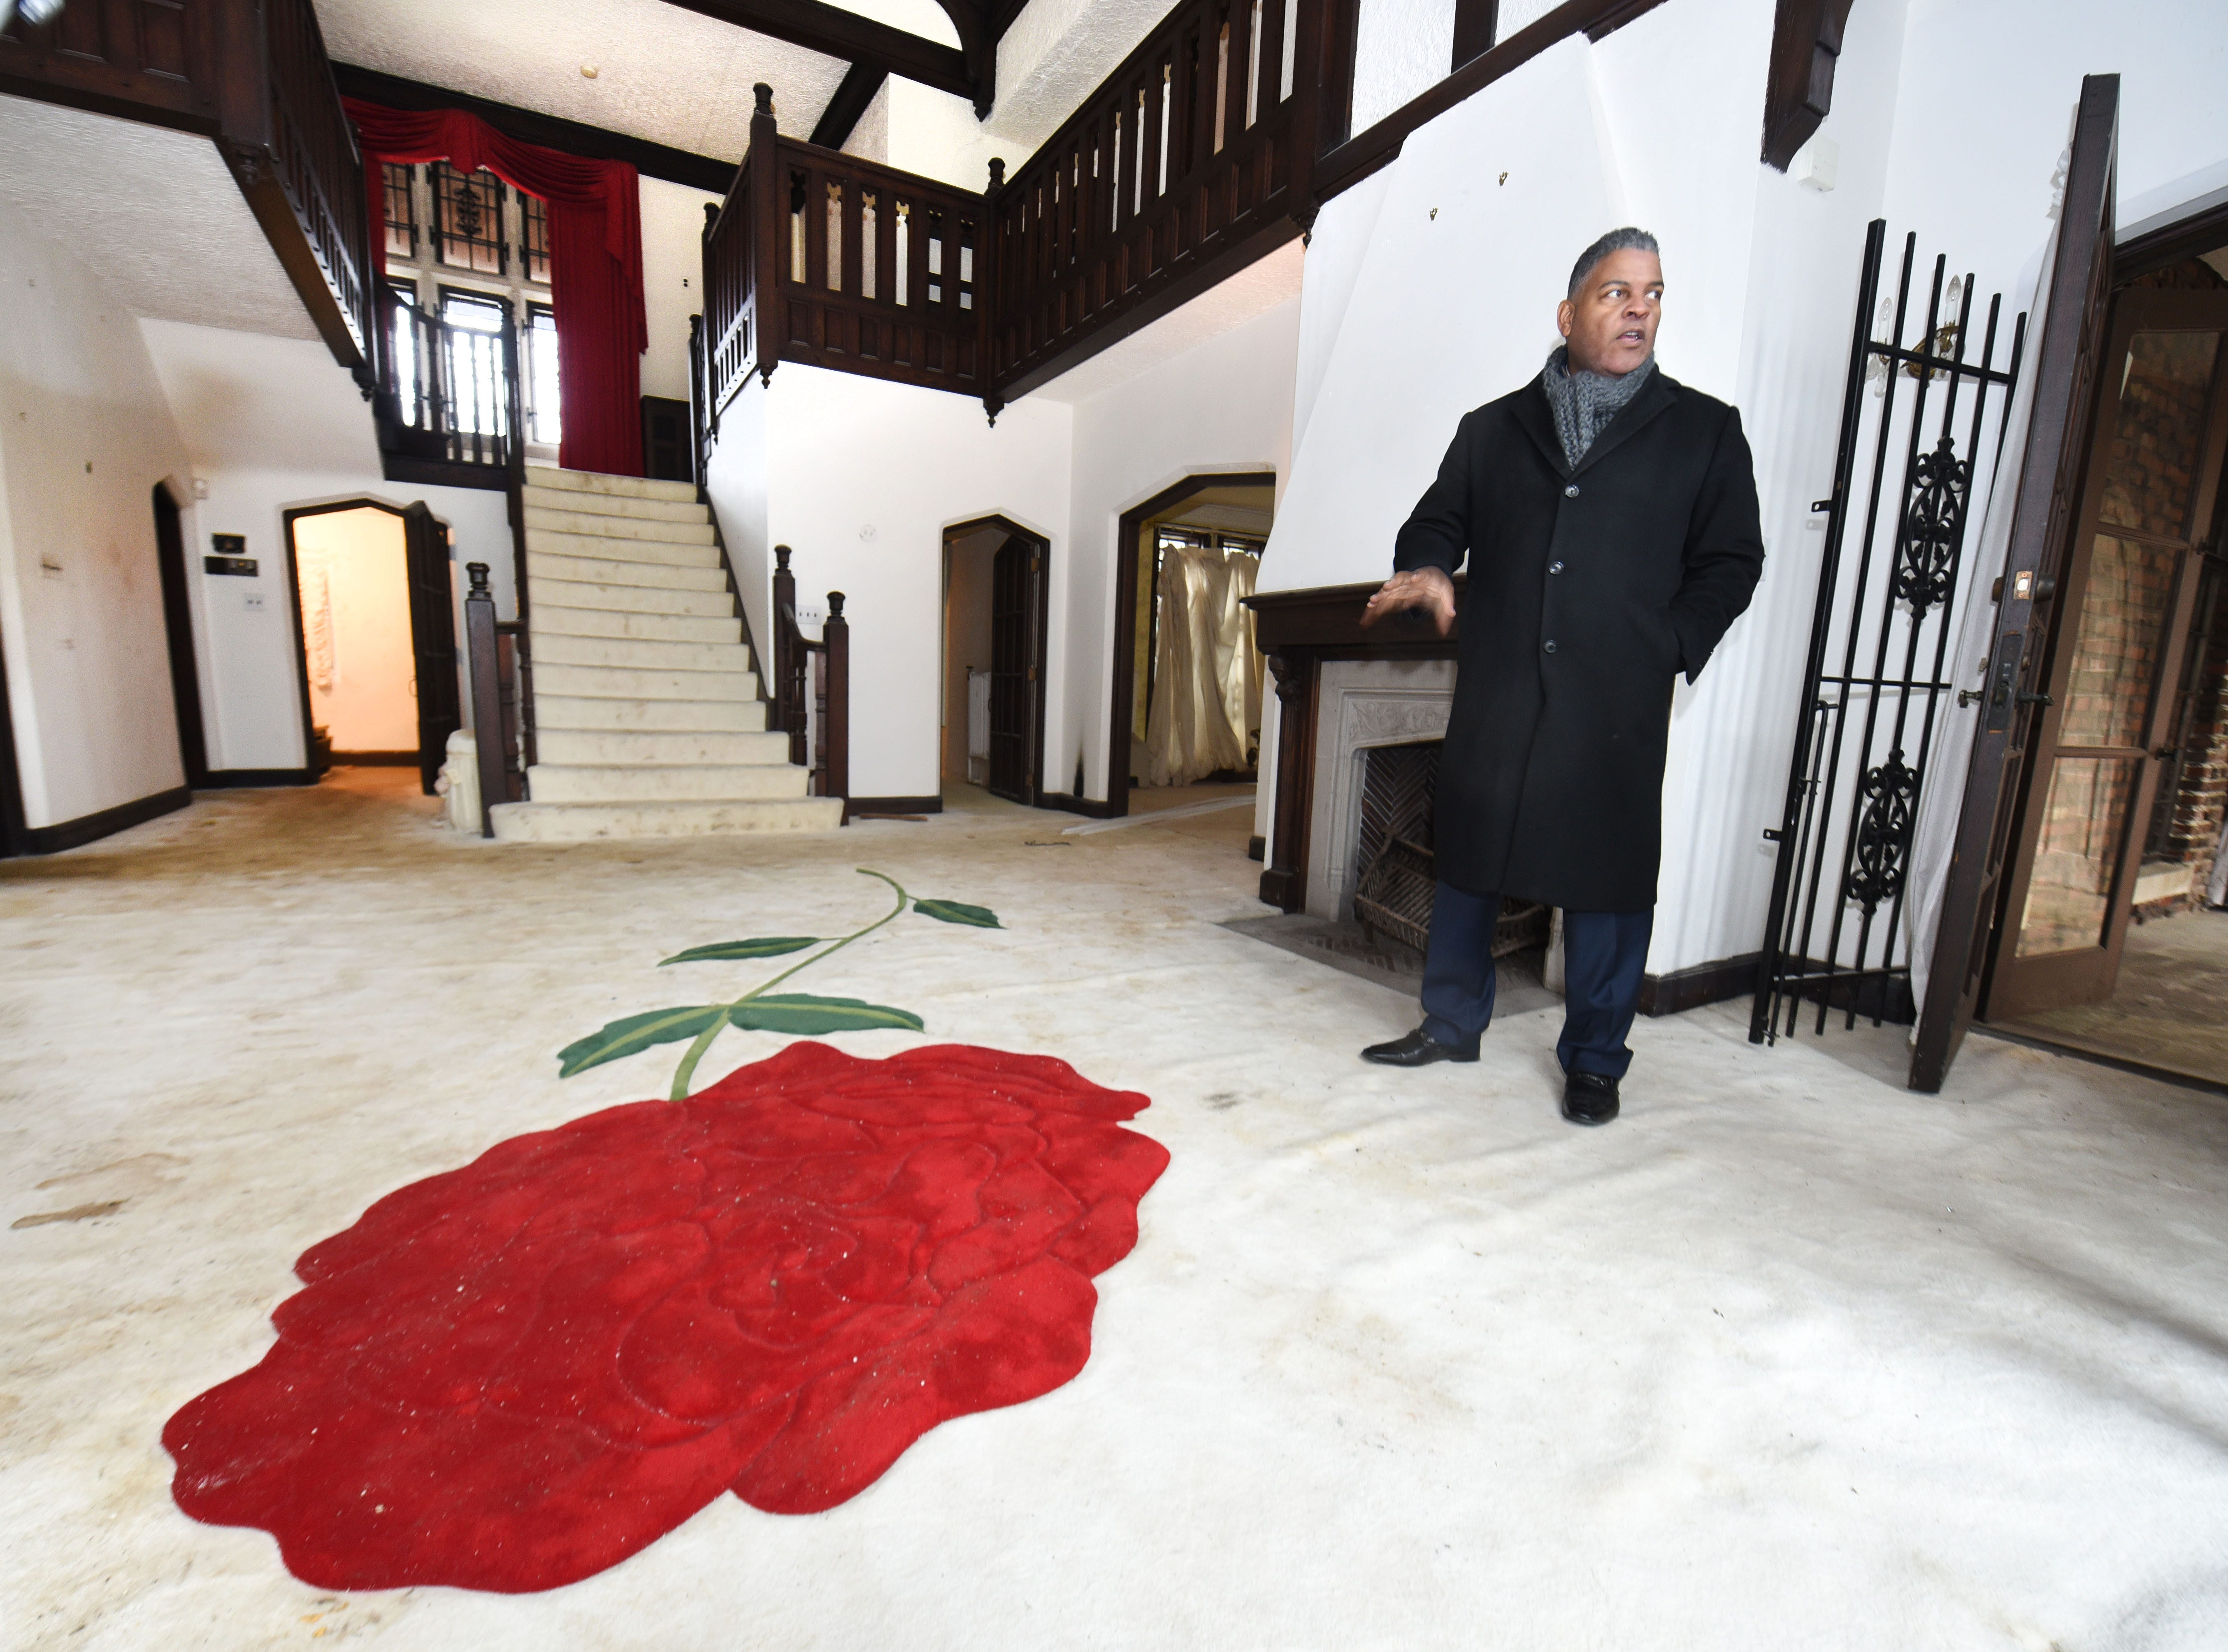 """Anthony Kellum, president of Kellum Mortgage in Troy, is the buyer of the recently sold house.  He stands in the grand living space, adorned by a giant rose, in tribute to the singer's collaboration with Lauryn Hill on the 1998 album """"A Rose Is Still a Rose.""""  The house became known as the Rose Estate."""